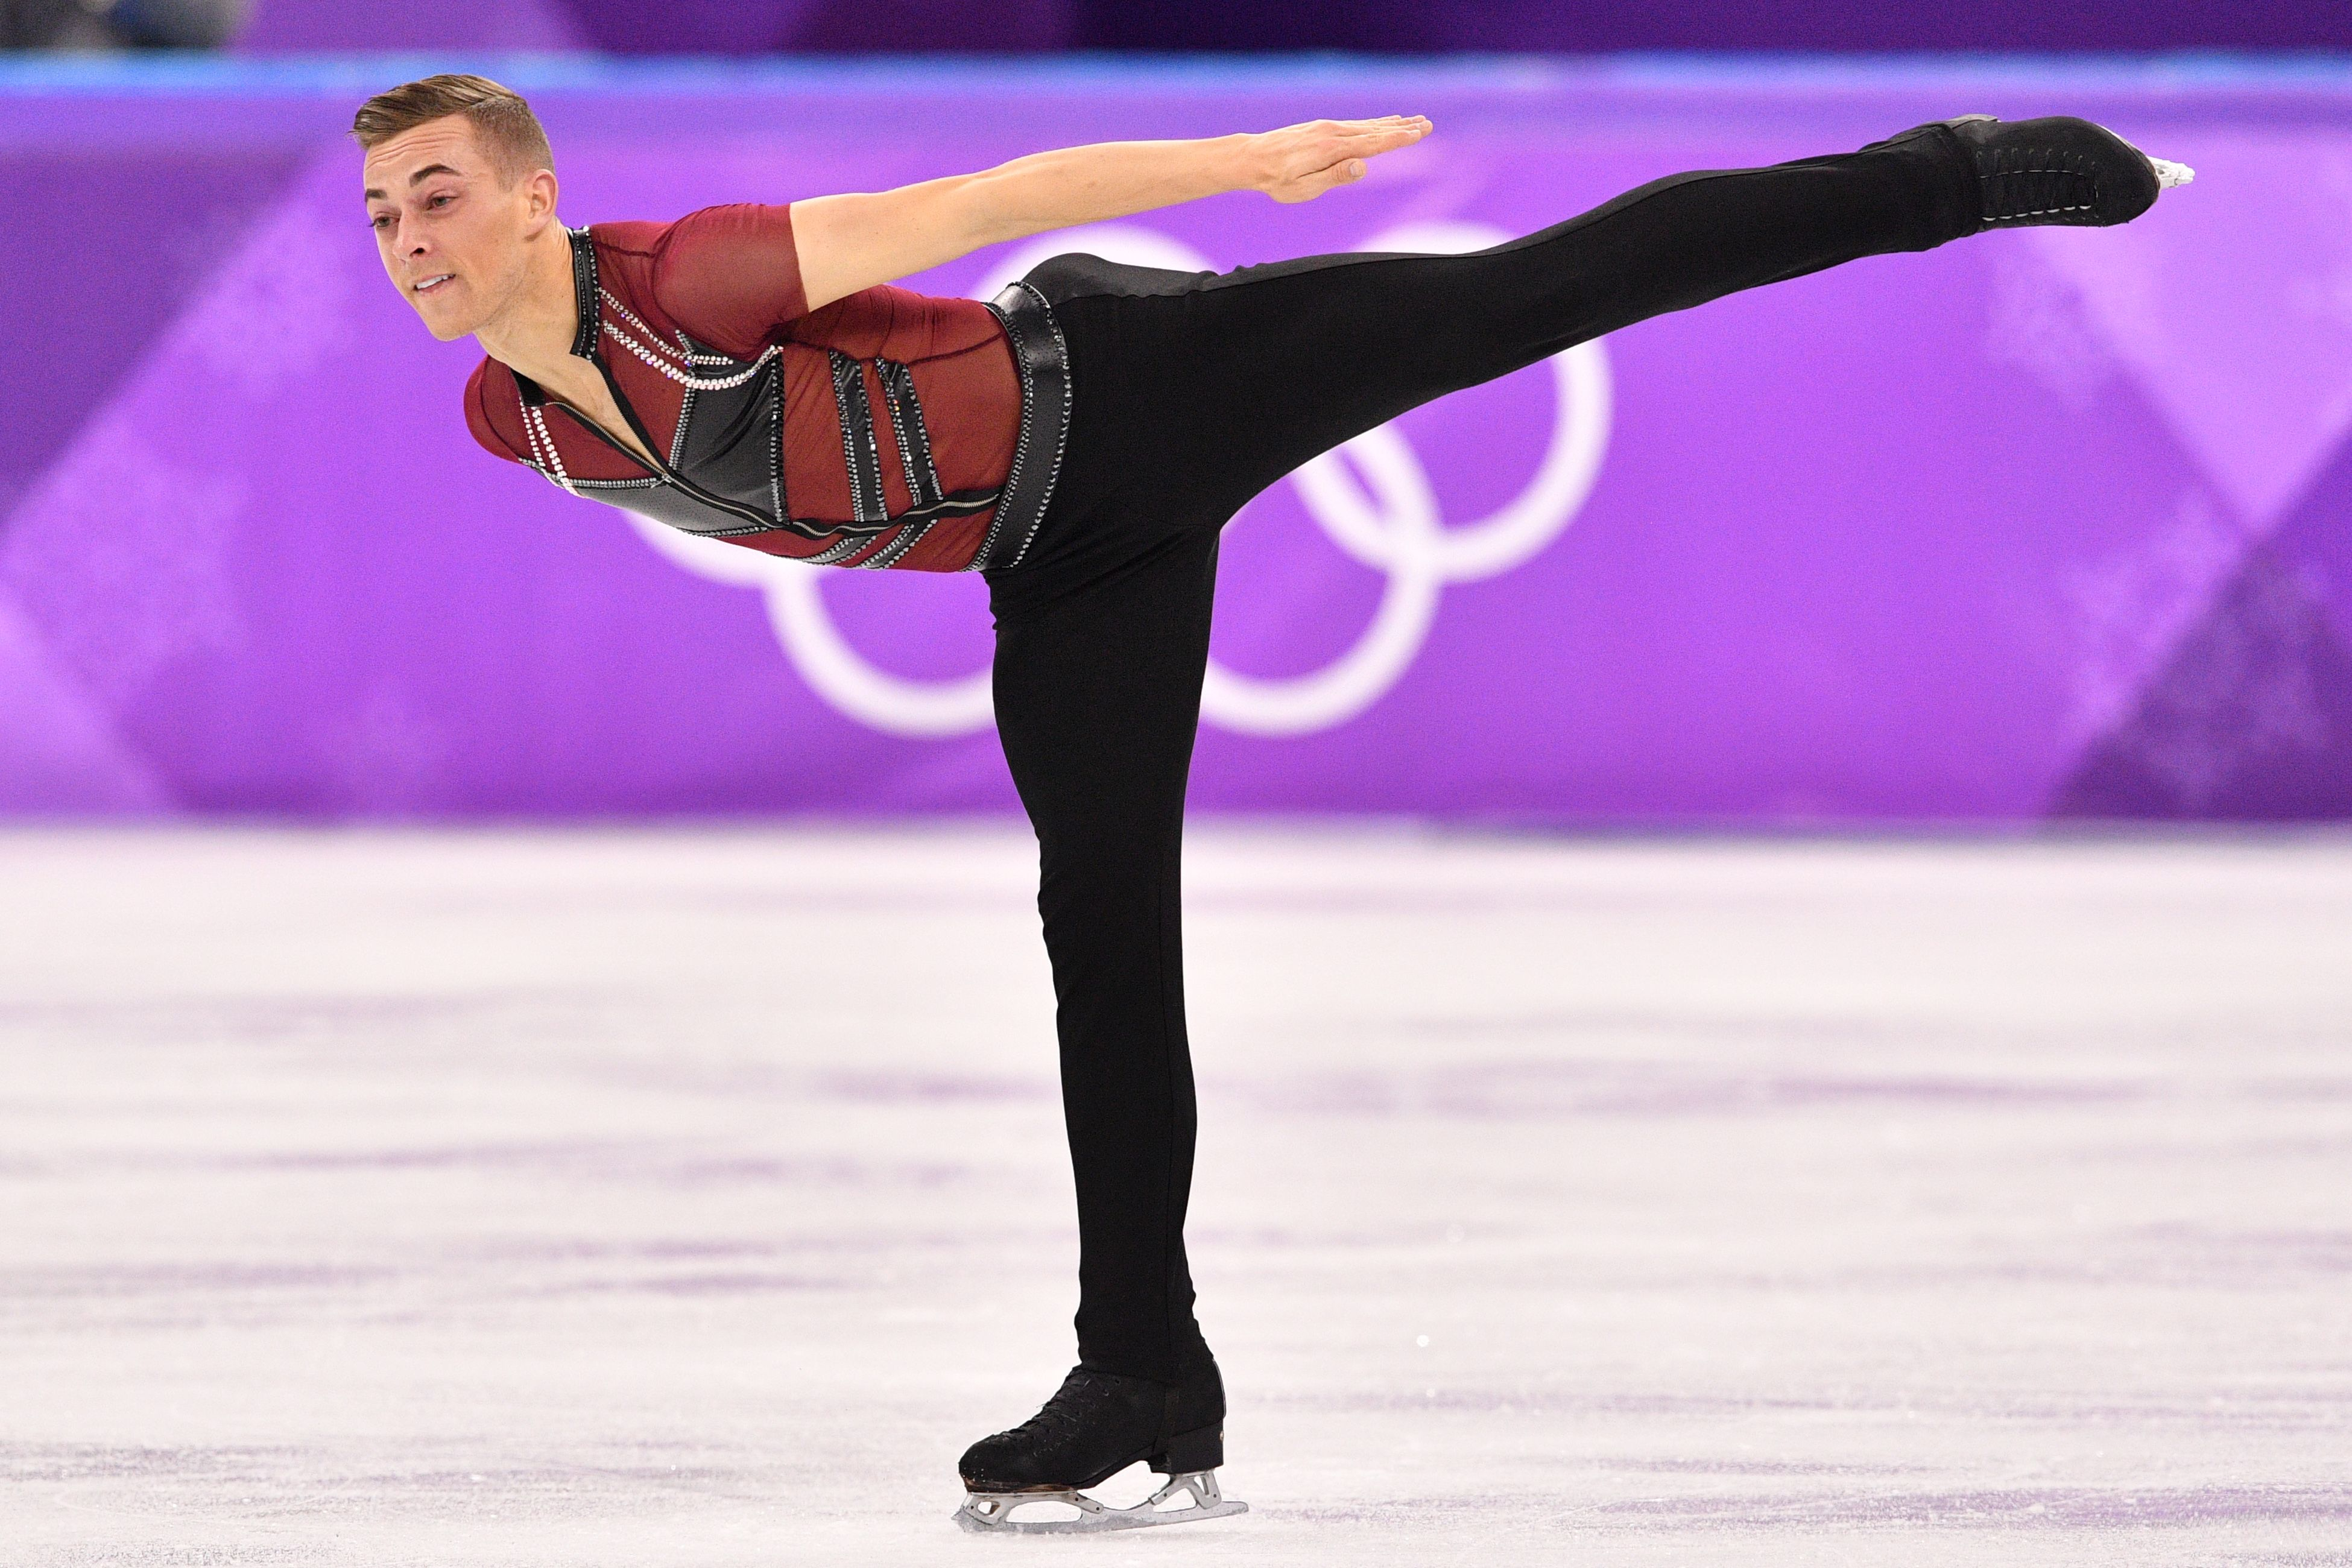 USA's Adam Rippon competes in the men's single skating short program of the figure skating event during the Pyeongchang 2018 Winter Olympic Games at the Gangneung Ice Arena in Gangneung on Feb. 16, 2018.